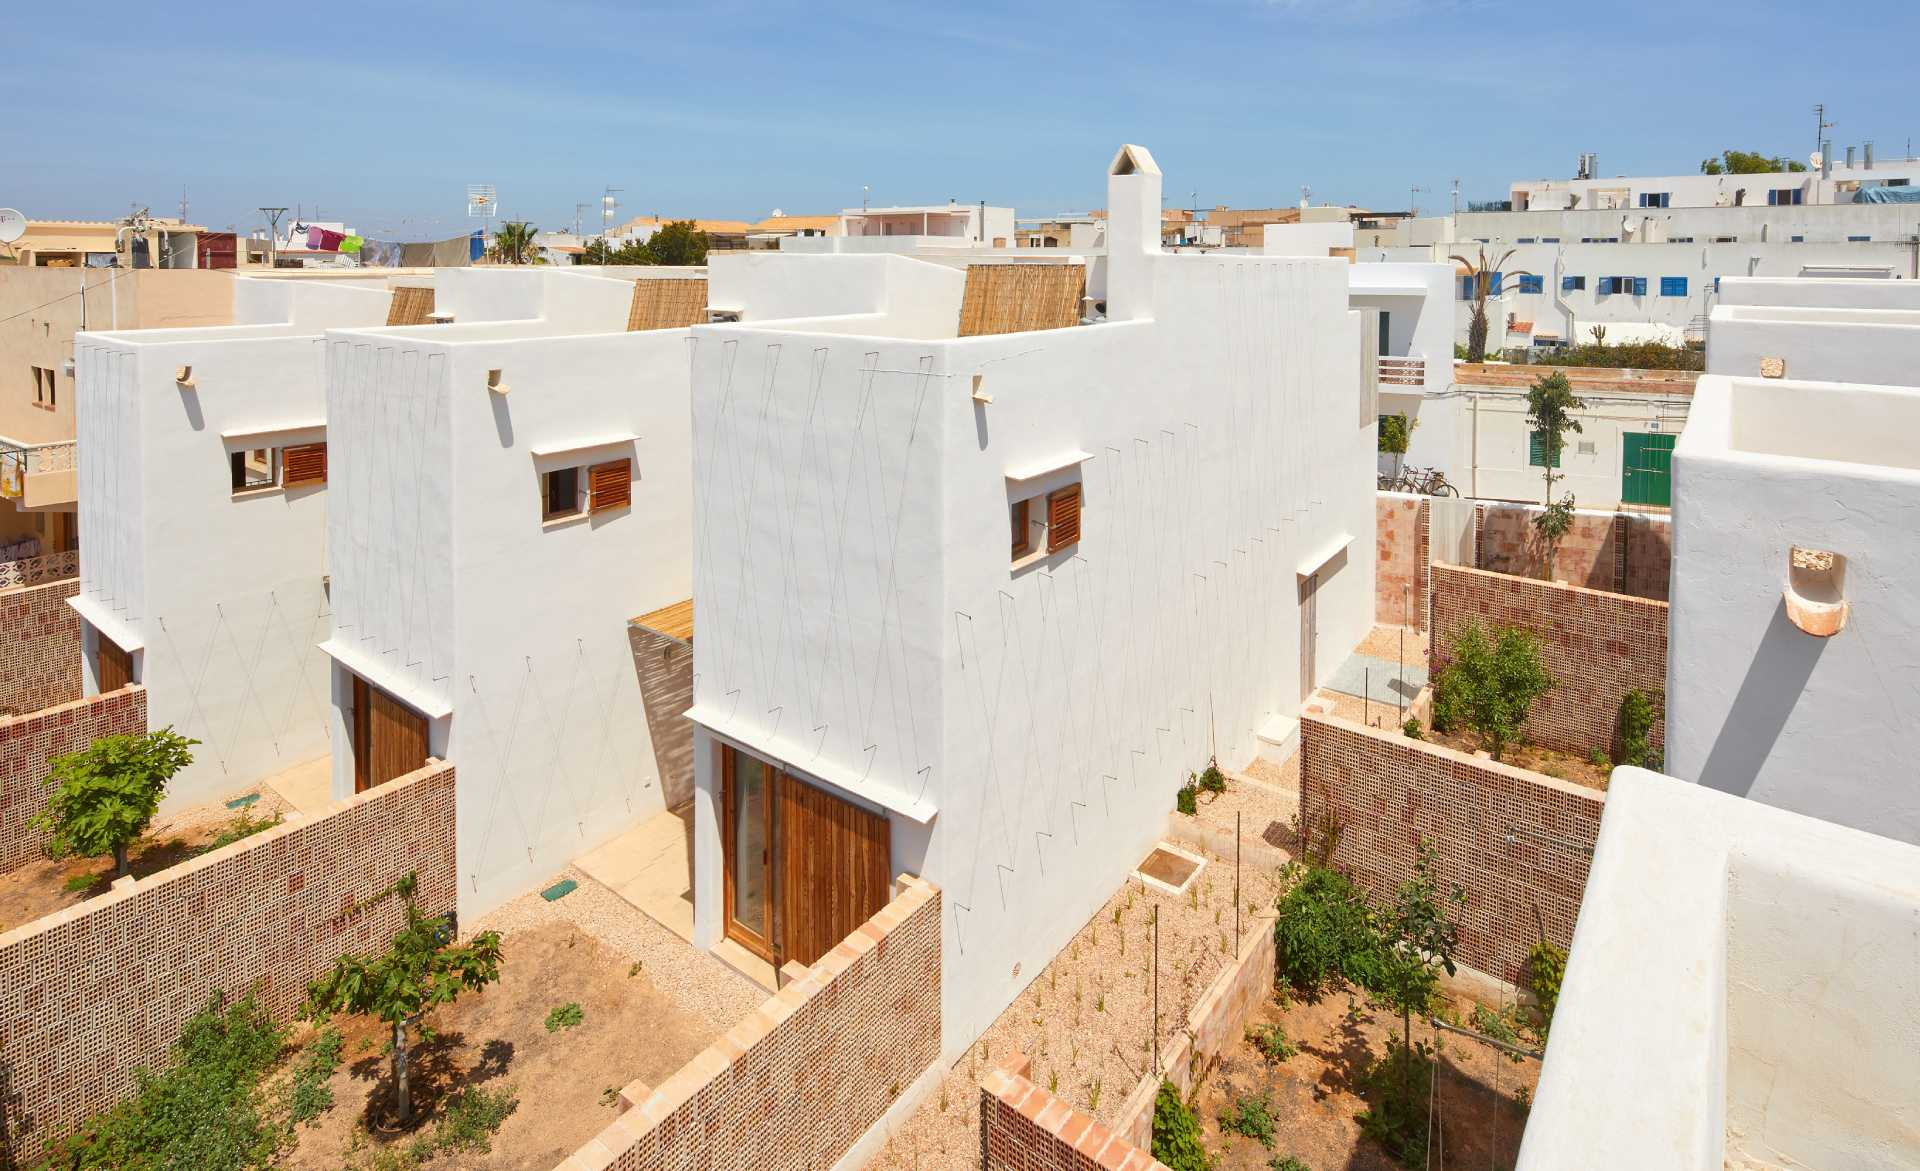 14 Dwellings in Formentera  - 06 formentera 38